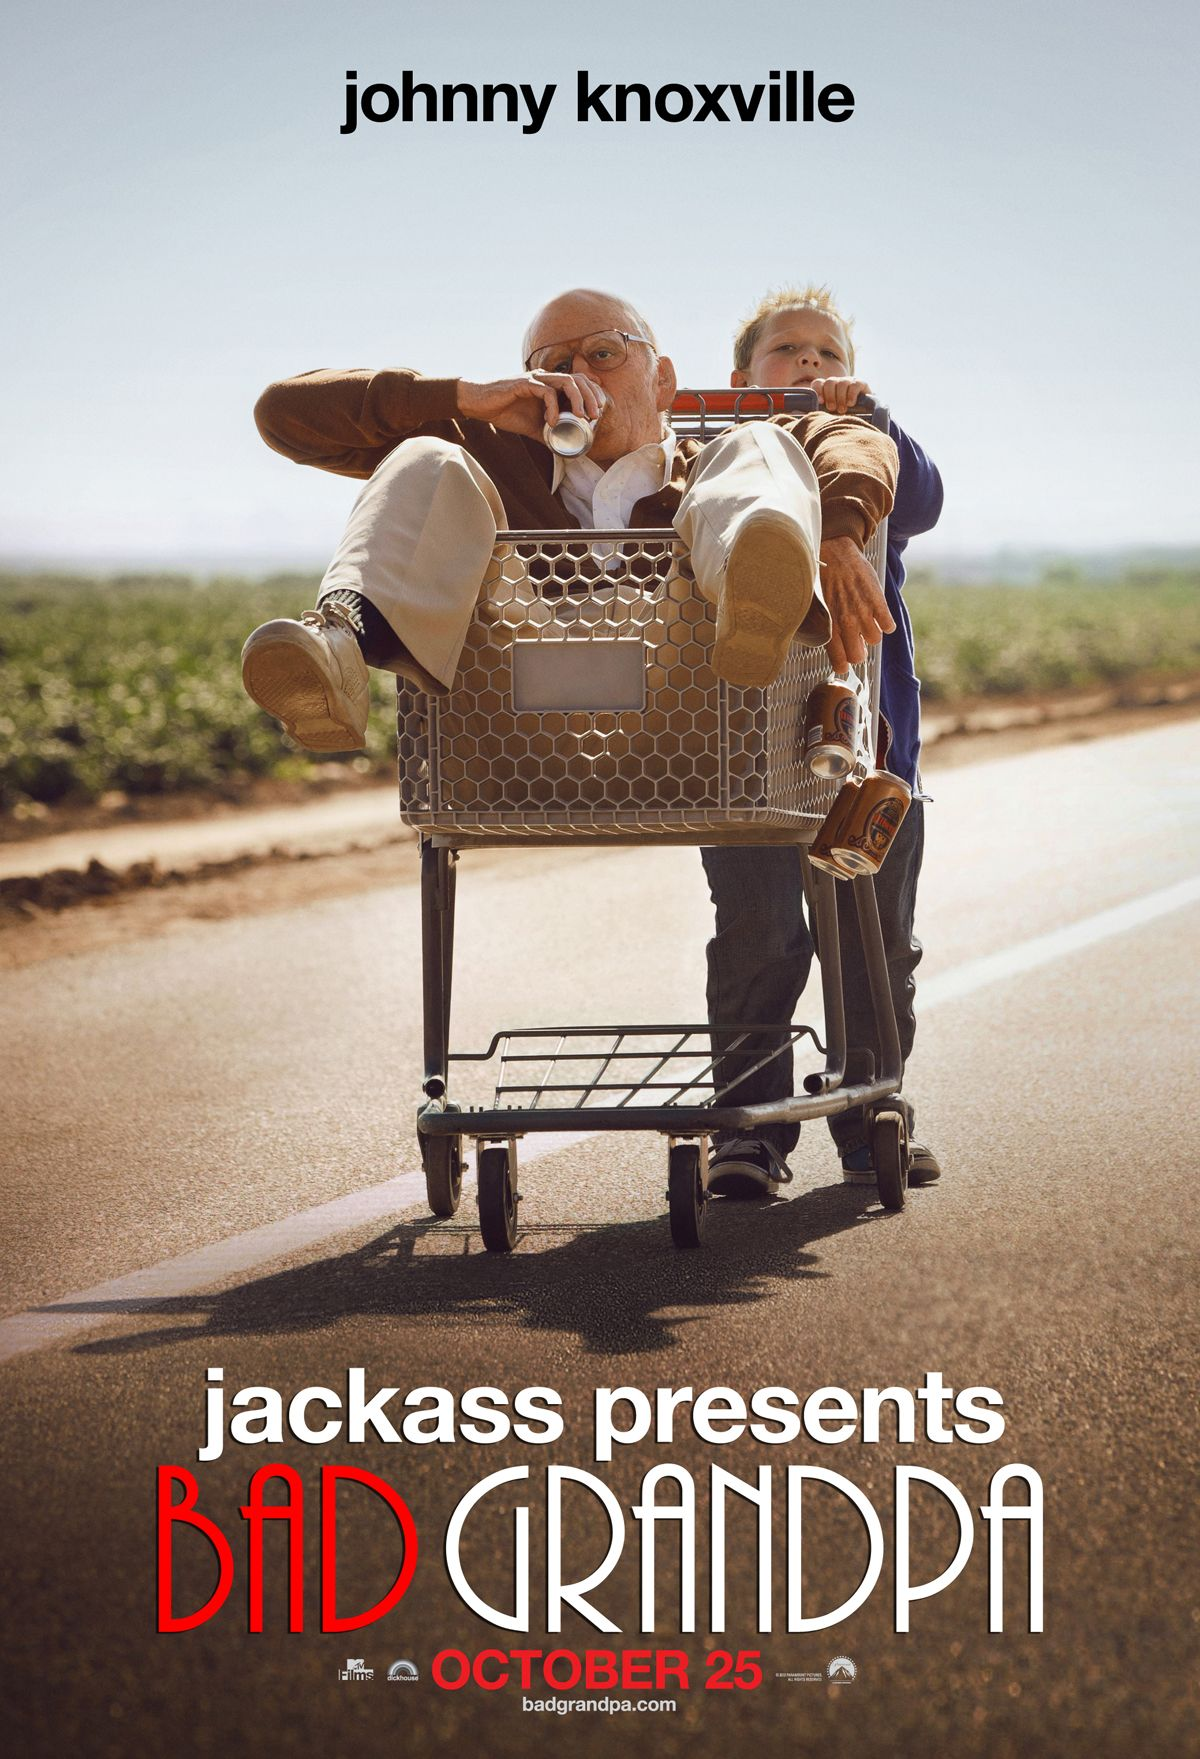 Bad Grandpa , starring Johnny Knoxville, Jackson Nicoll, Spike Jonze, Georgina Cates. 86-year-old Irving Zisman is on a journey across America with the most unlikely companion: his 8 year-old grandson, Billy. #Comedy